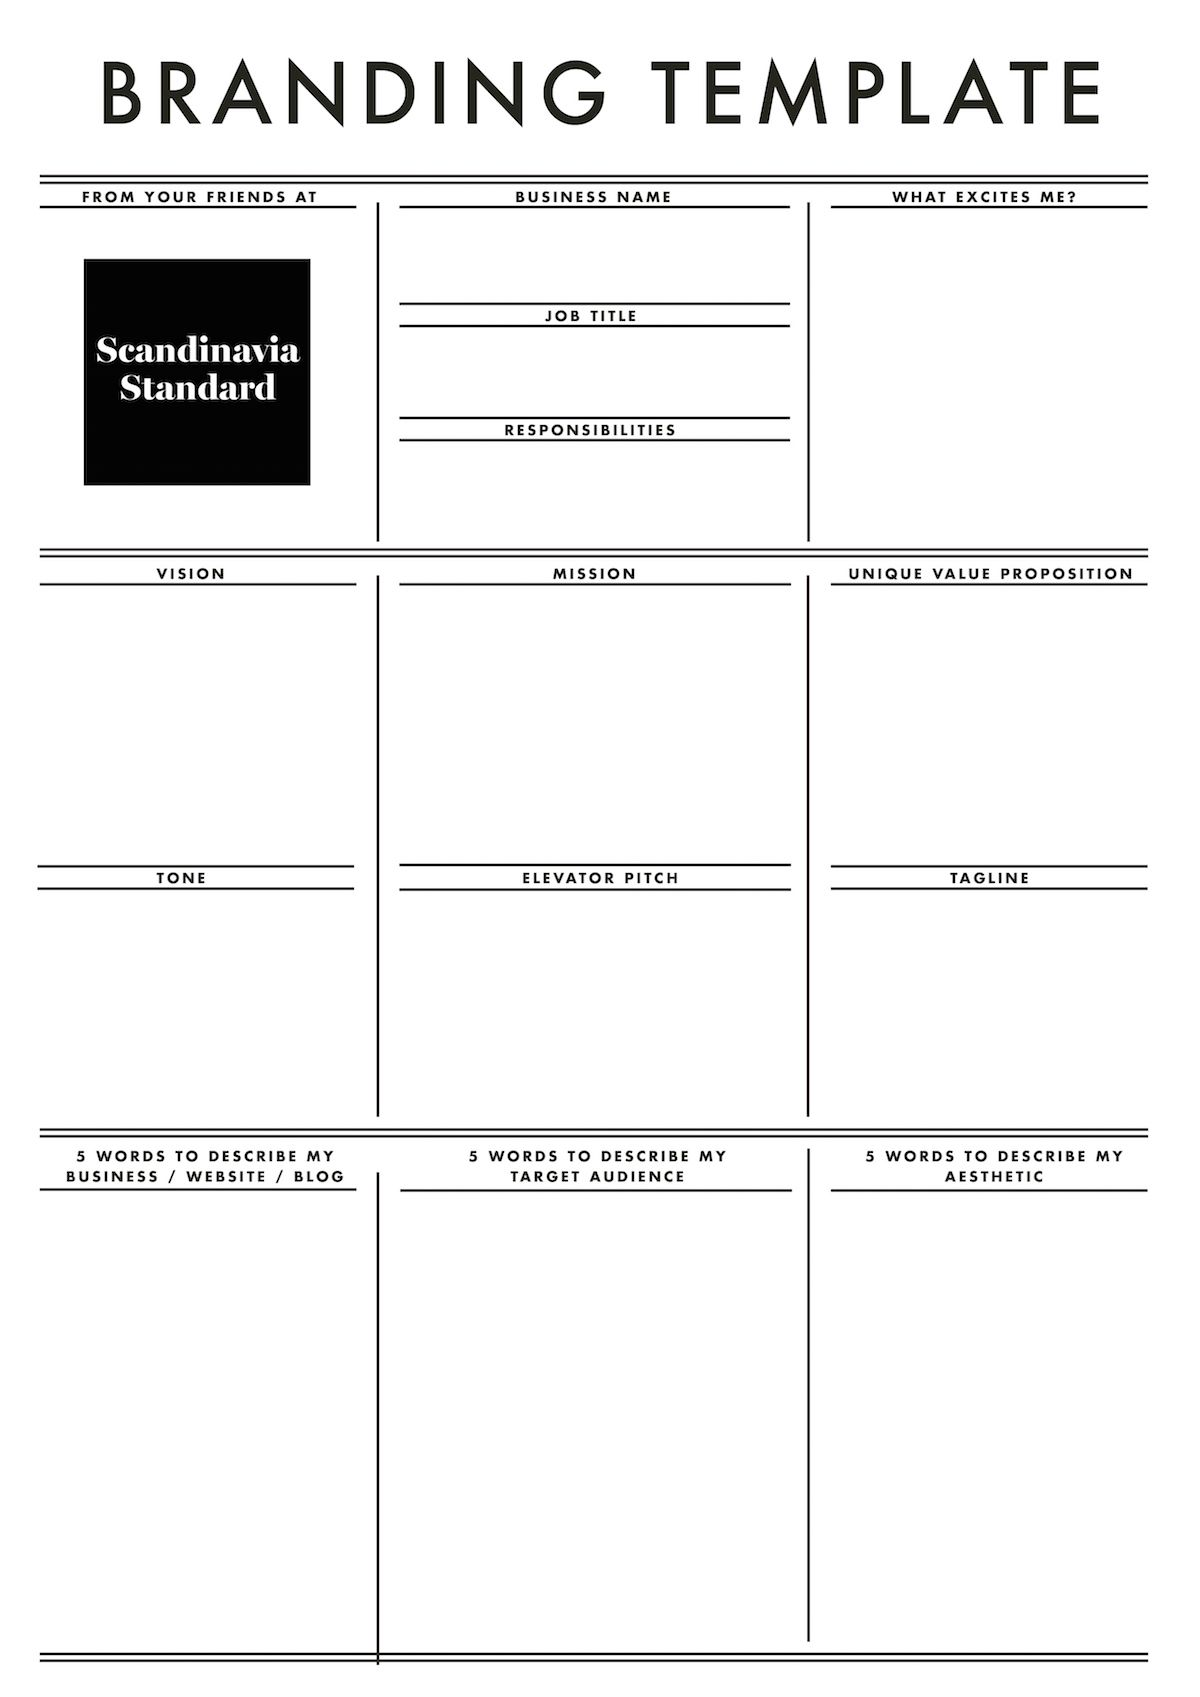 An Easy Guide To Branding The Business Model Canvas More Branding Template Business Model Canvas Branding Your Business